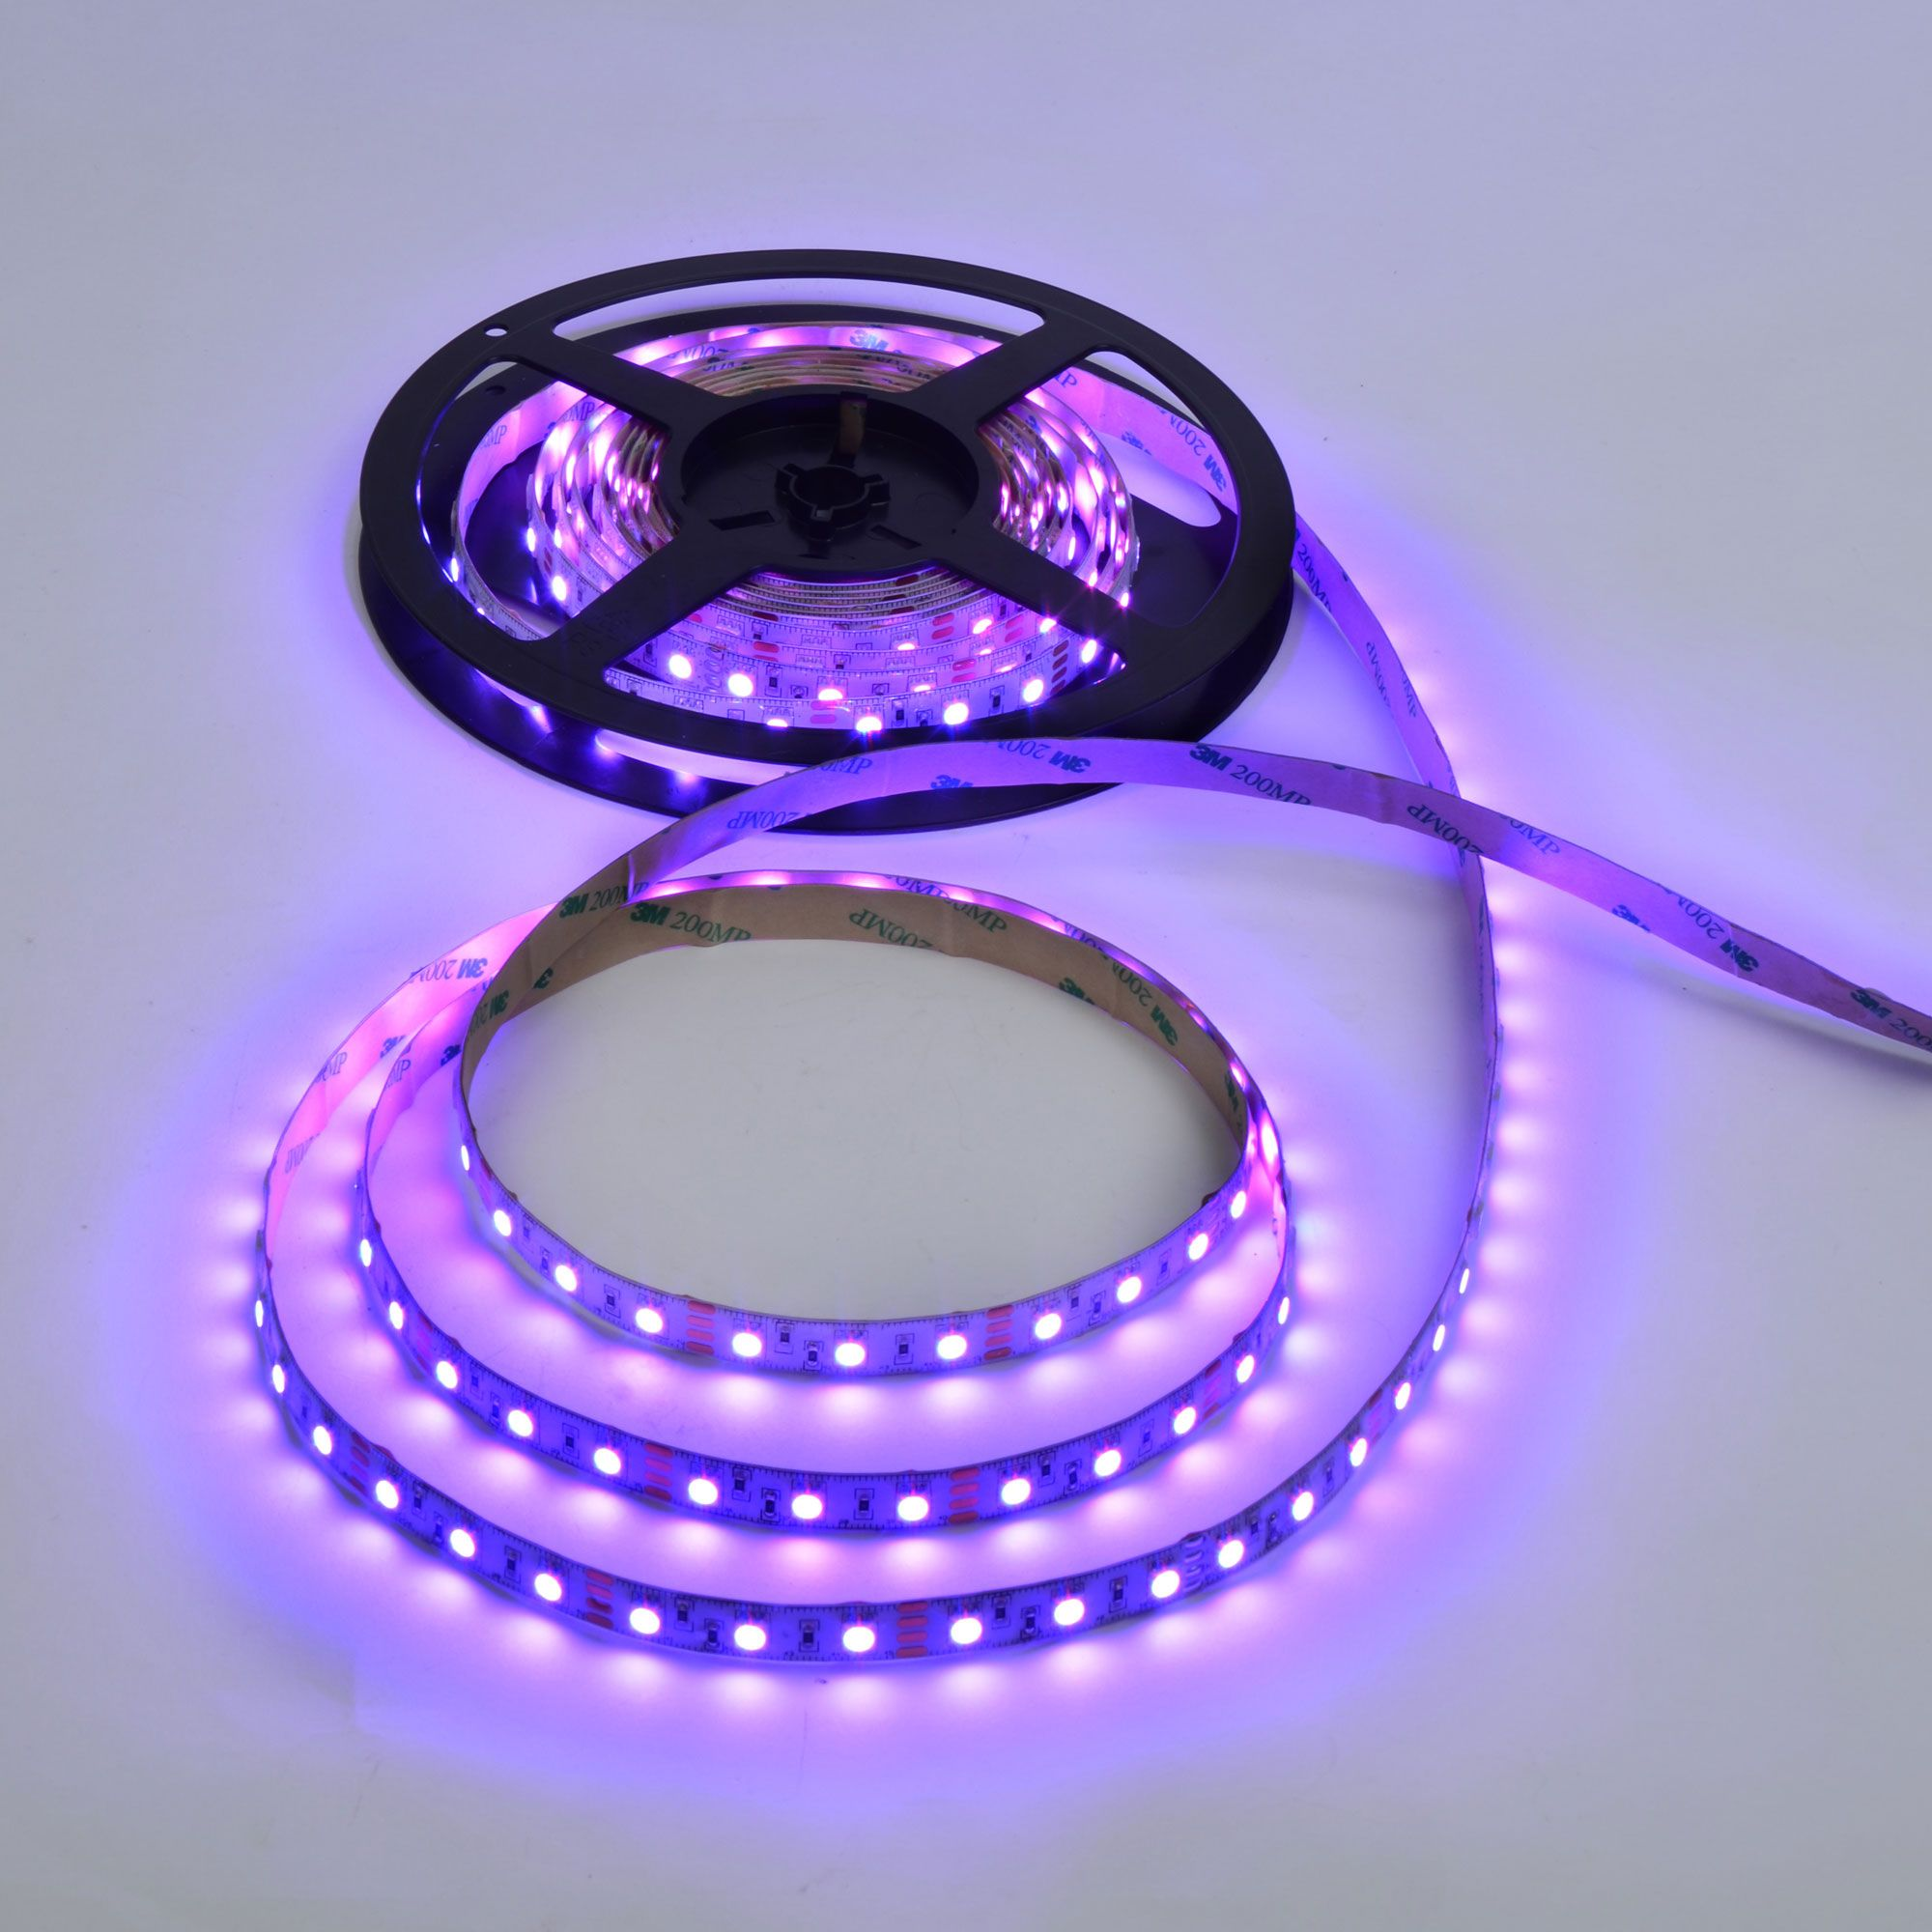 Led Strip Lights With Remote Cosmic Drip Strip Lighting Led Strip Lighting Led Lighting Bedroom